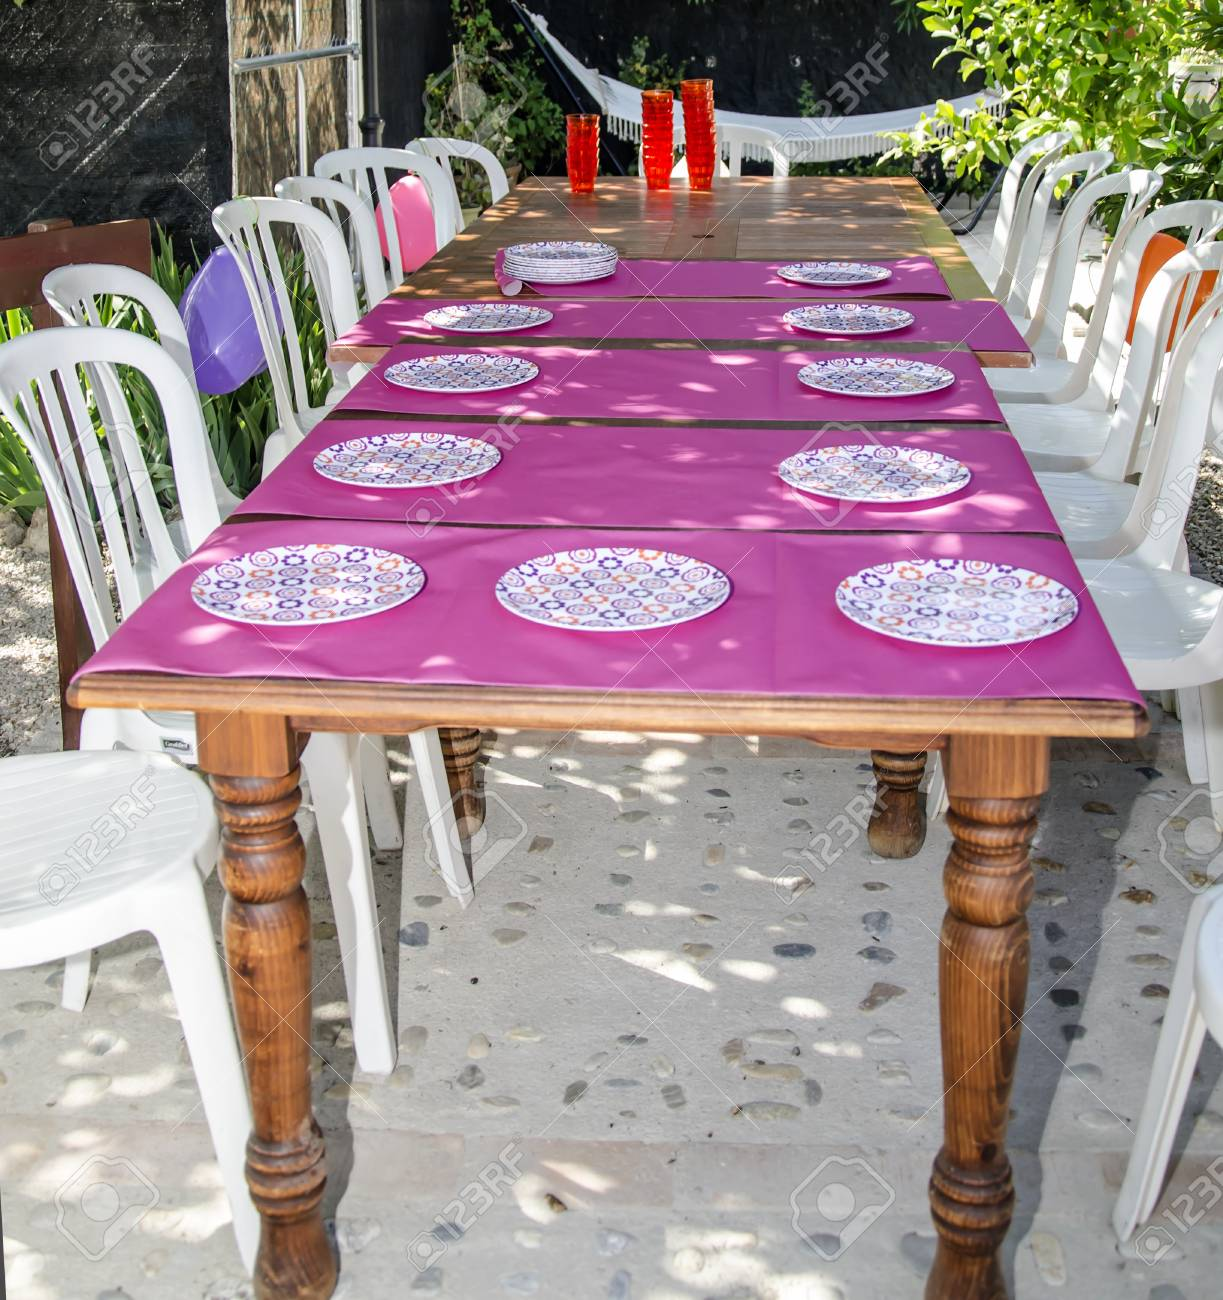 Stock Photo   Table Decorated With Colorful Tablecloths And Crockery